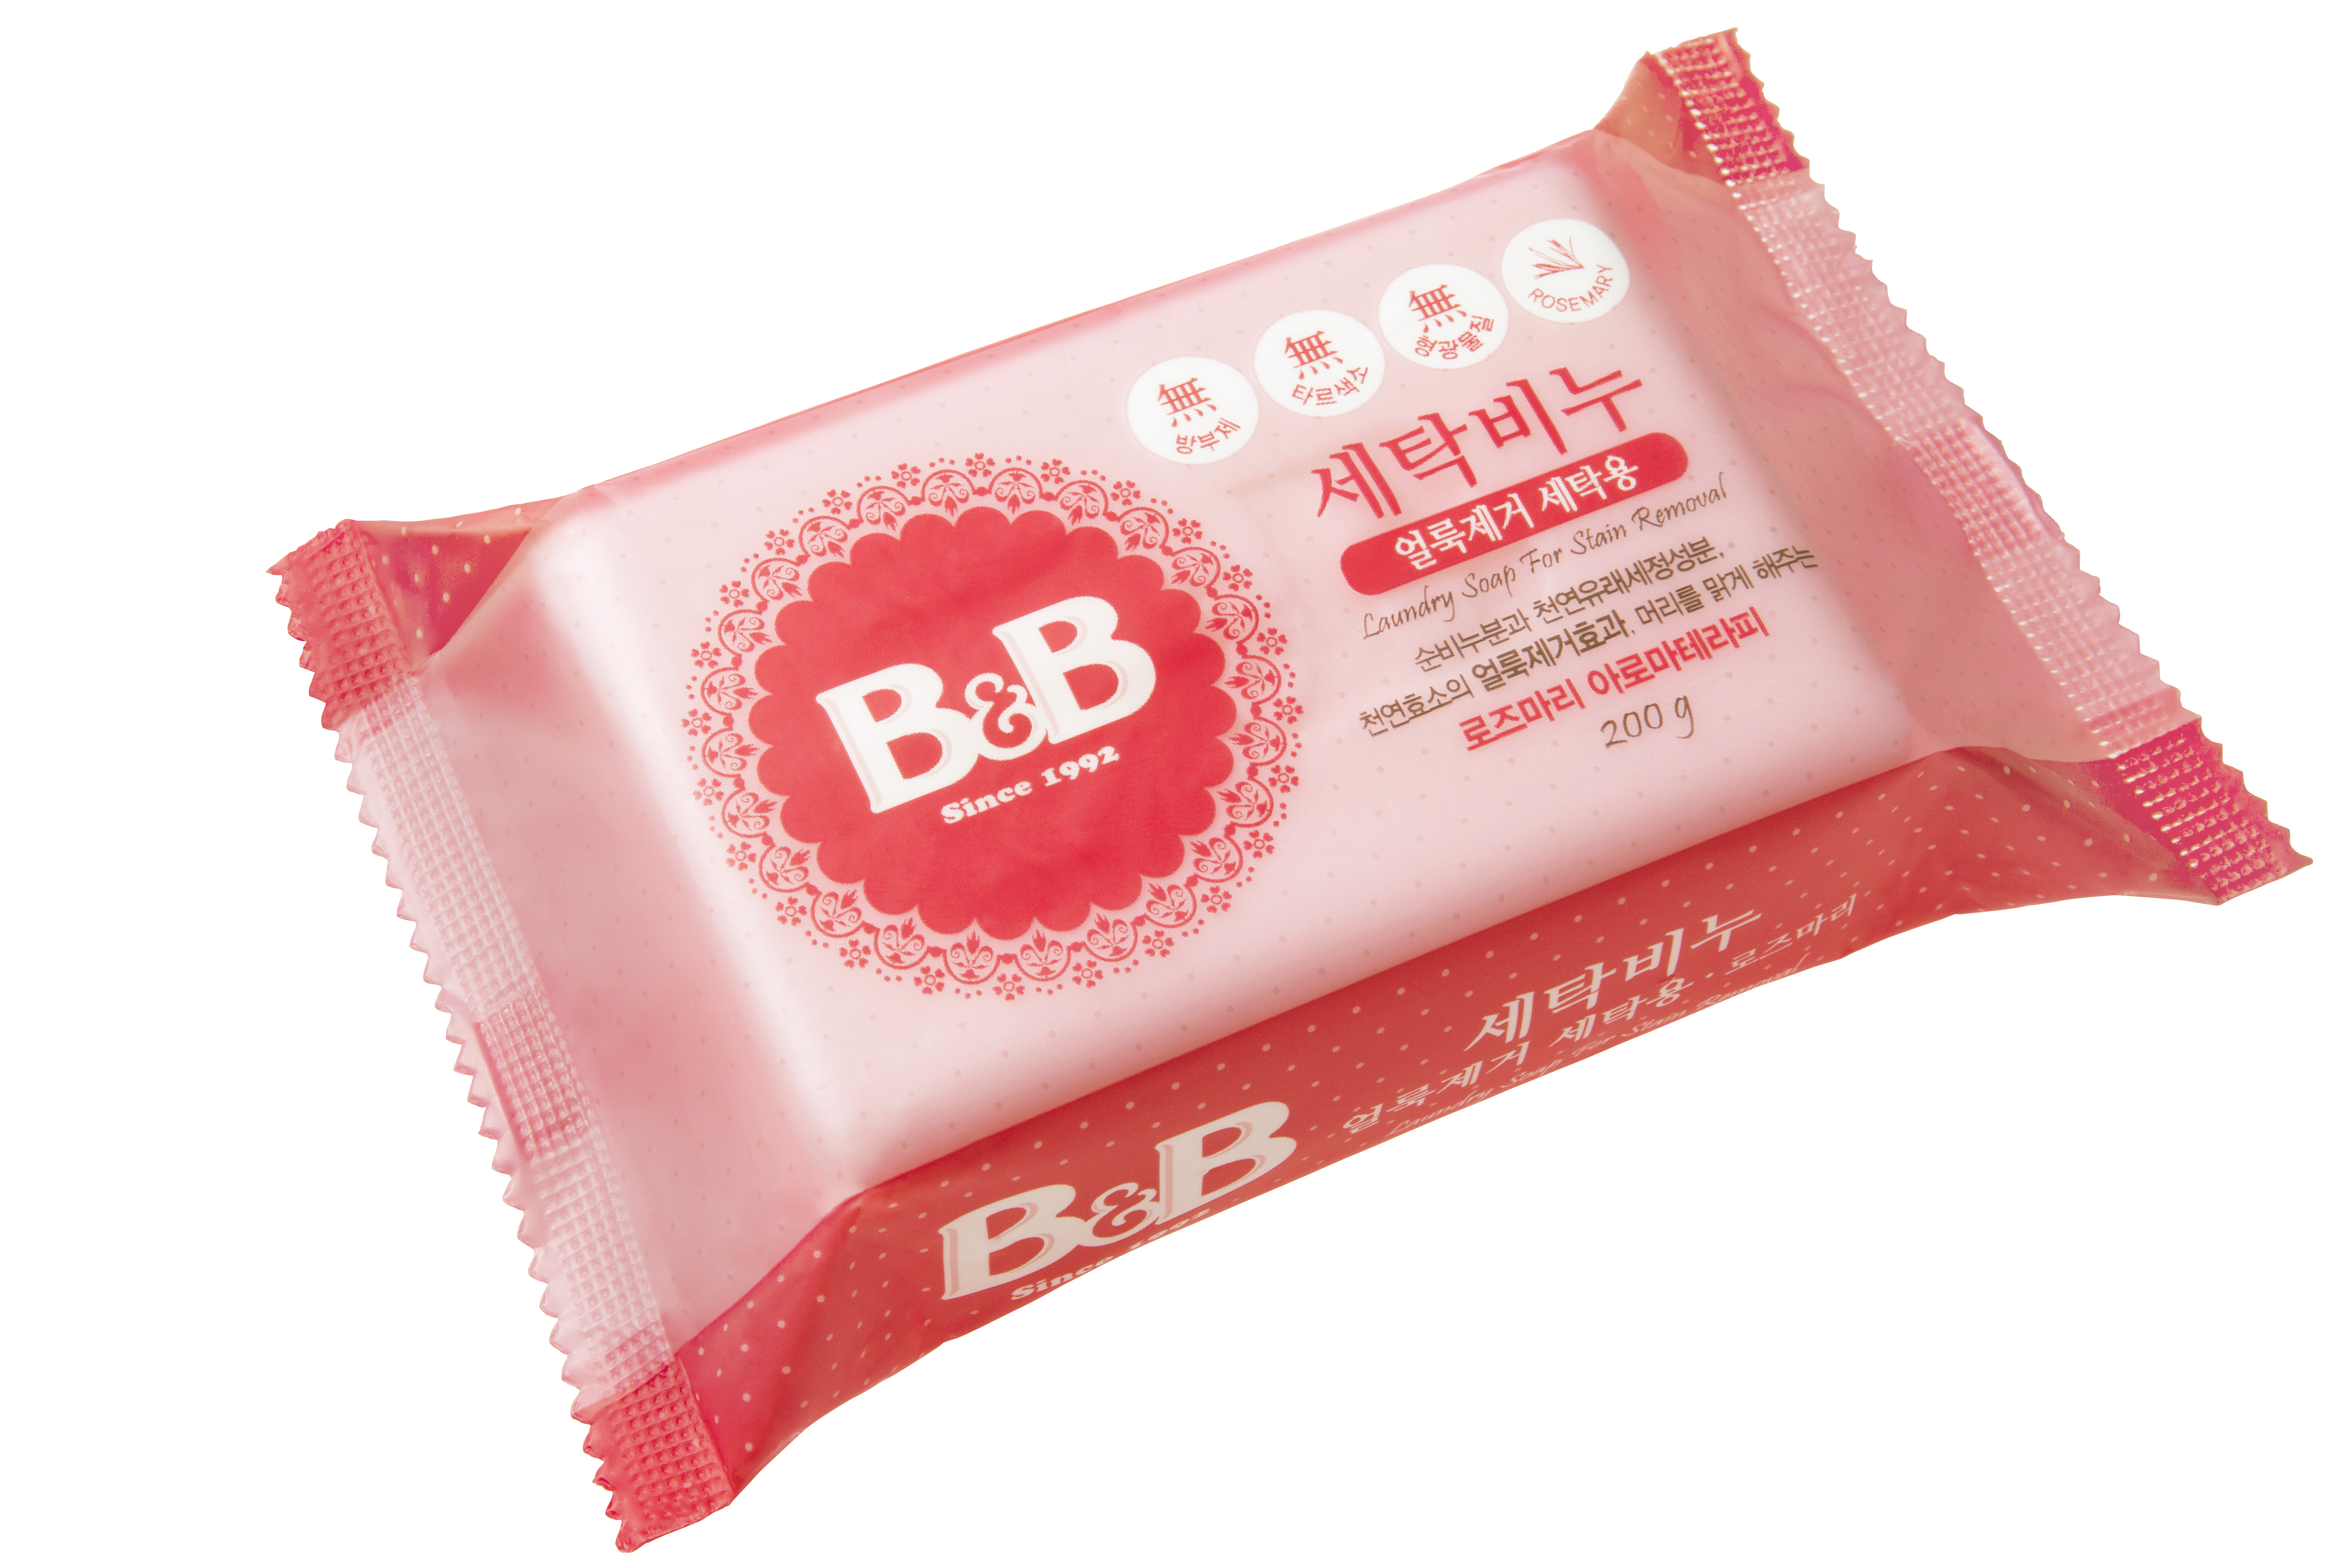 B&B Stain Removal Laundry Soap